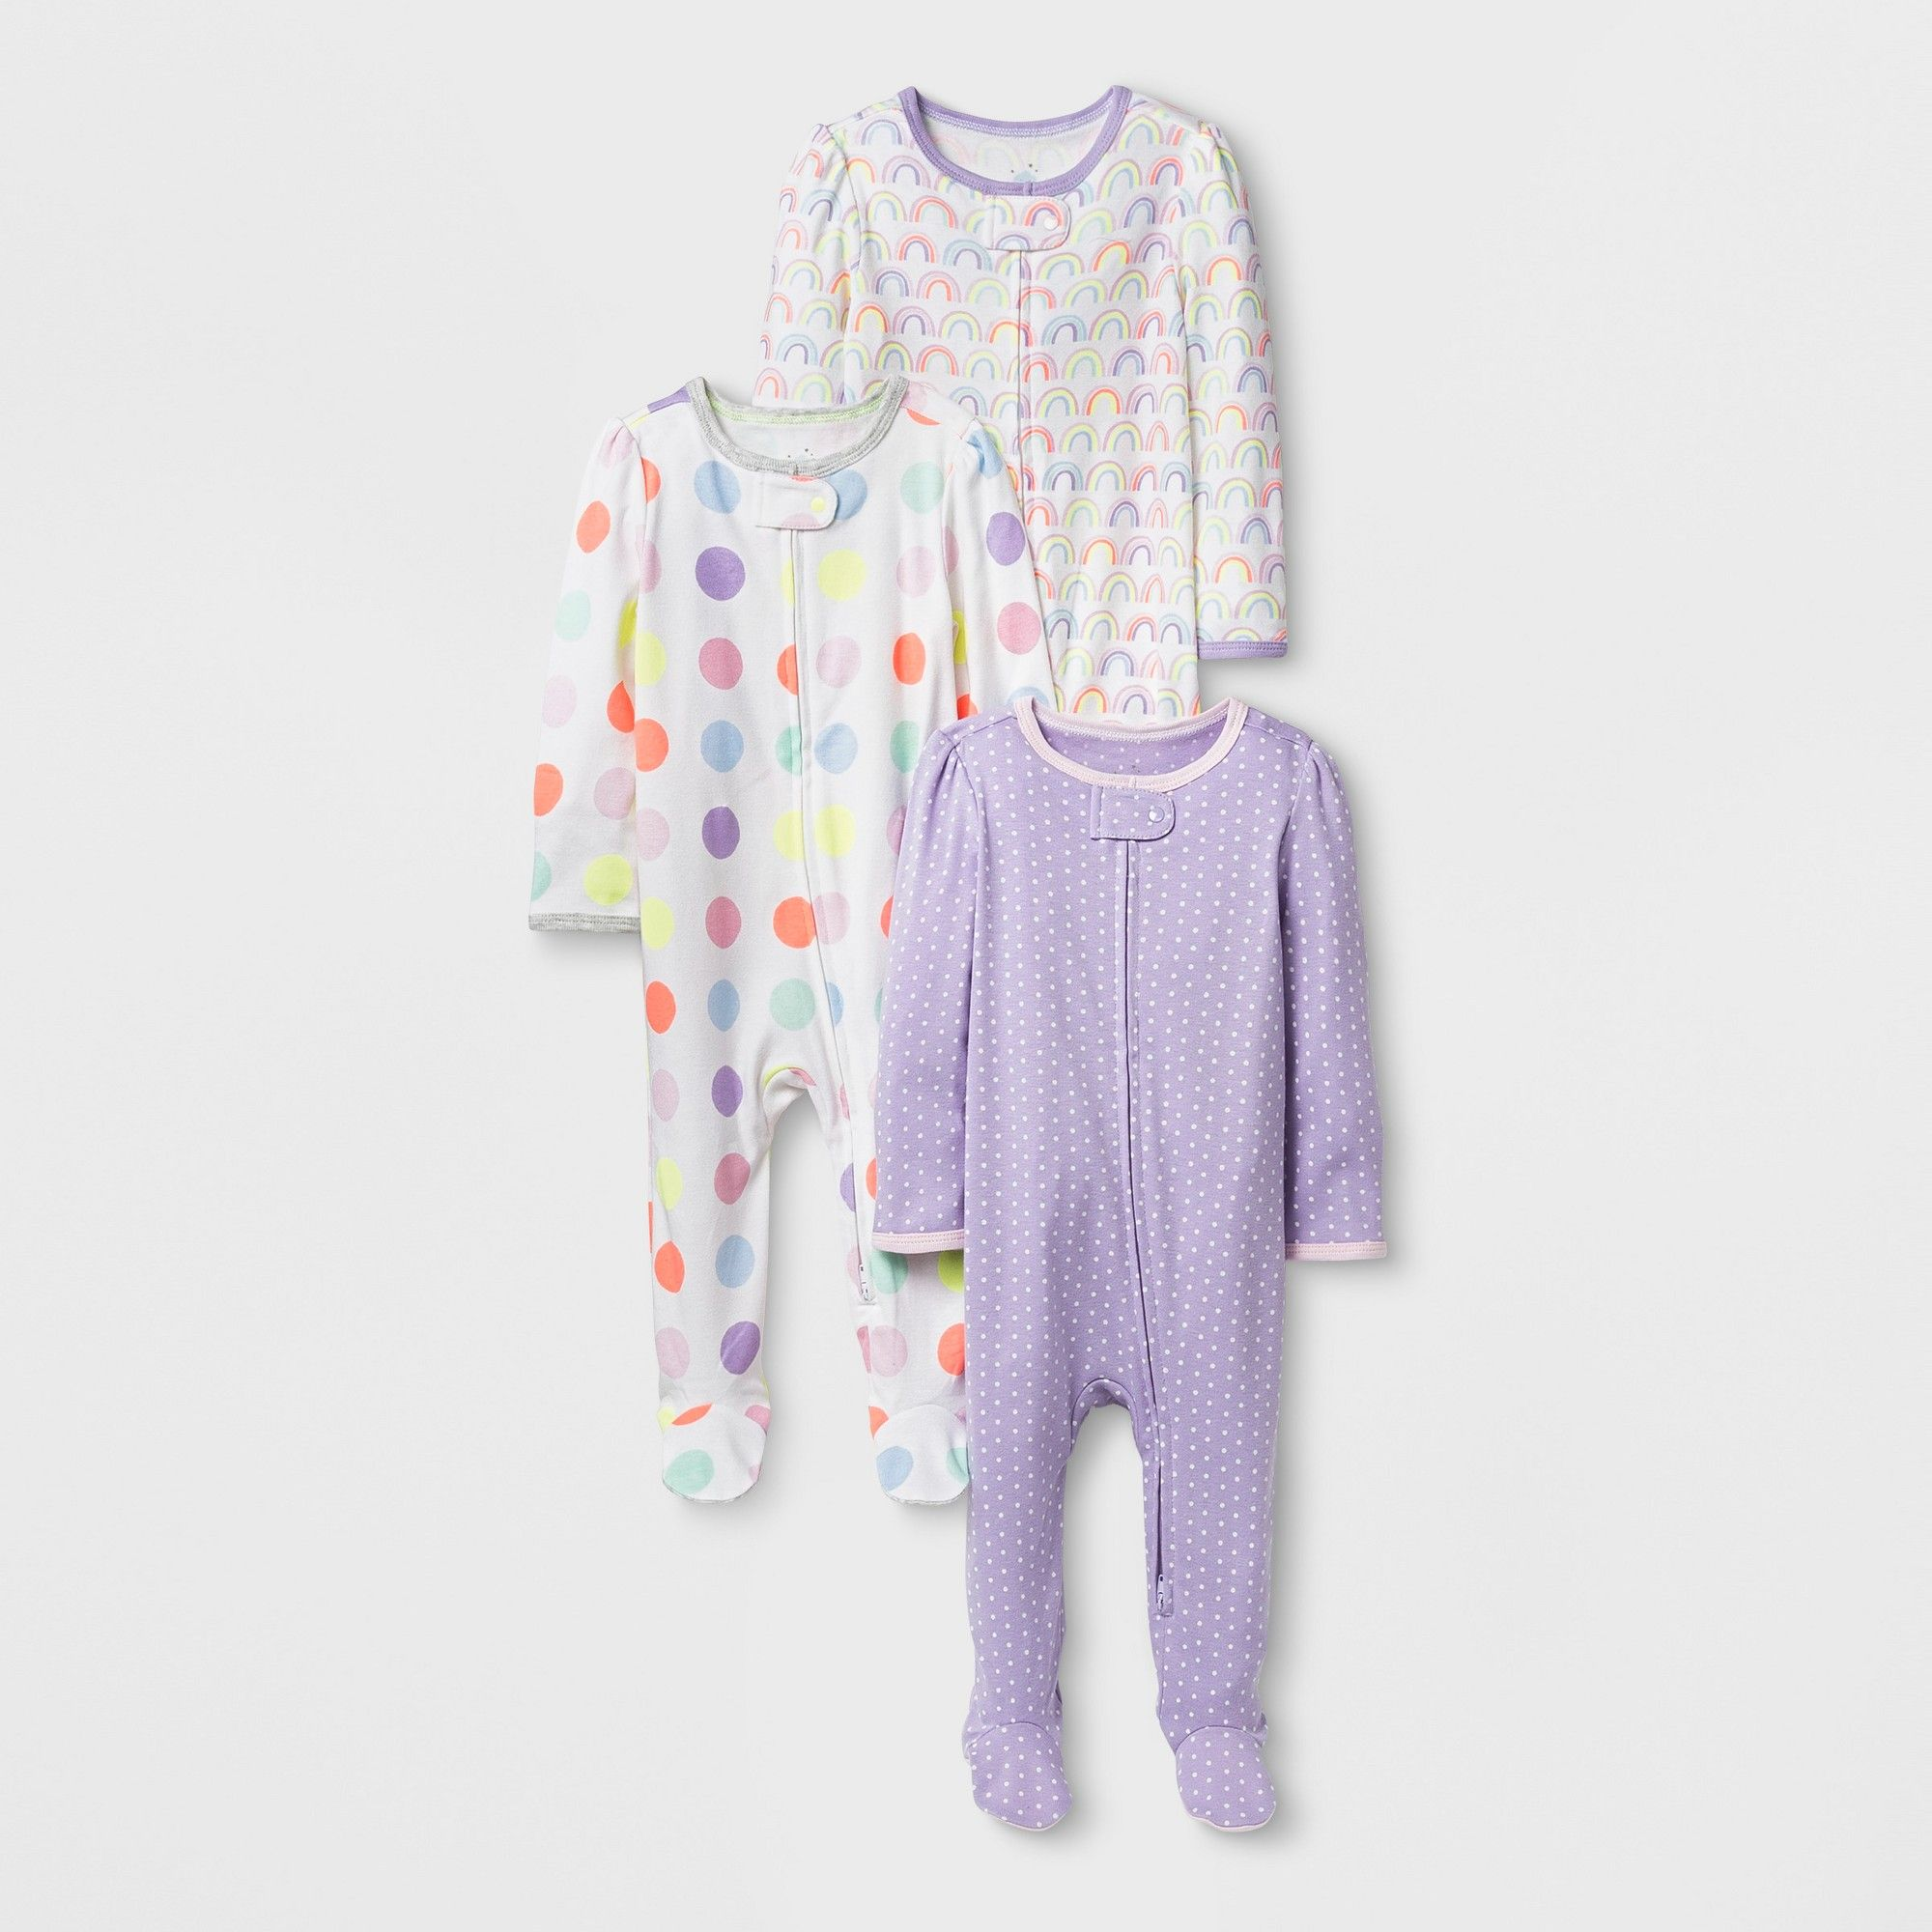 2ff0a08033 Baby Girls  3pk Rainbow Snp - Cloud Island White NB